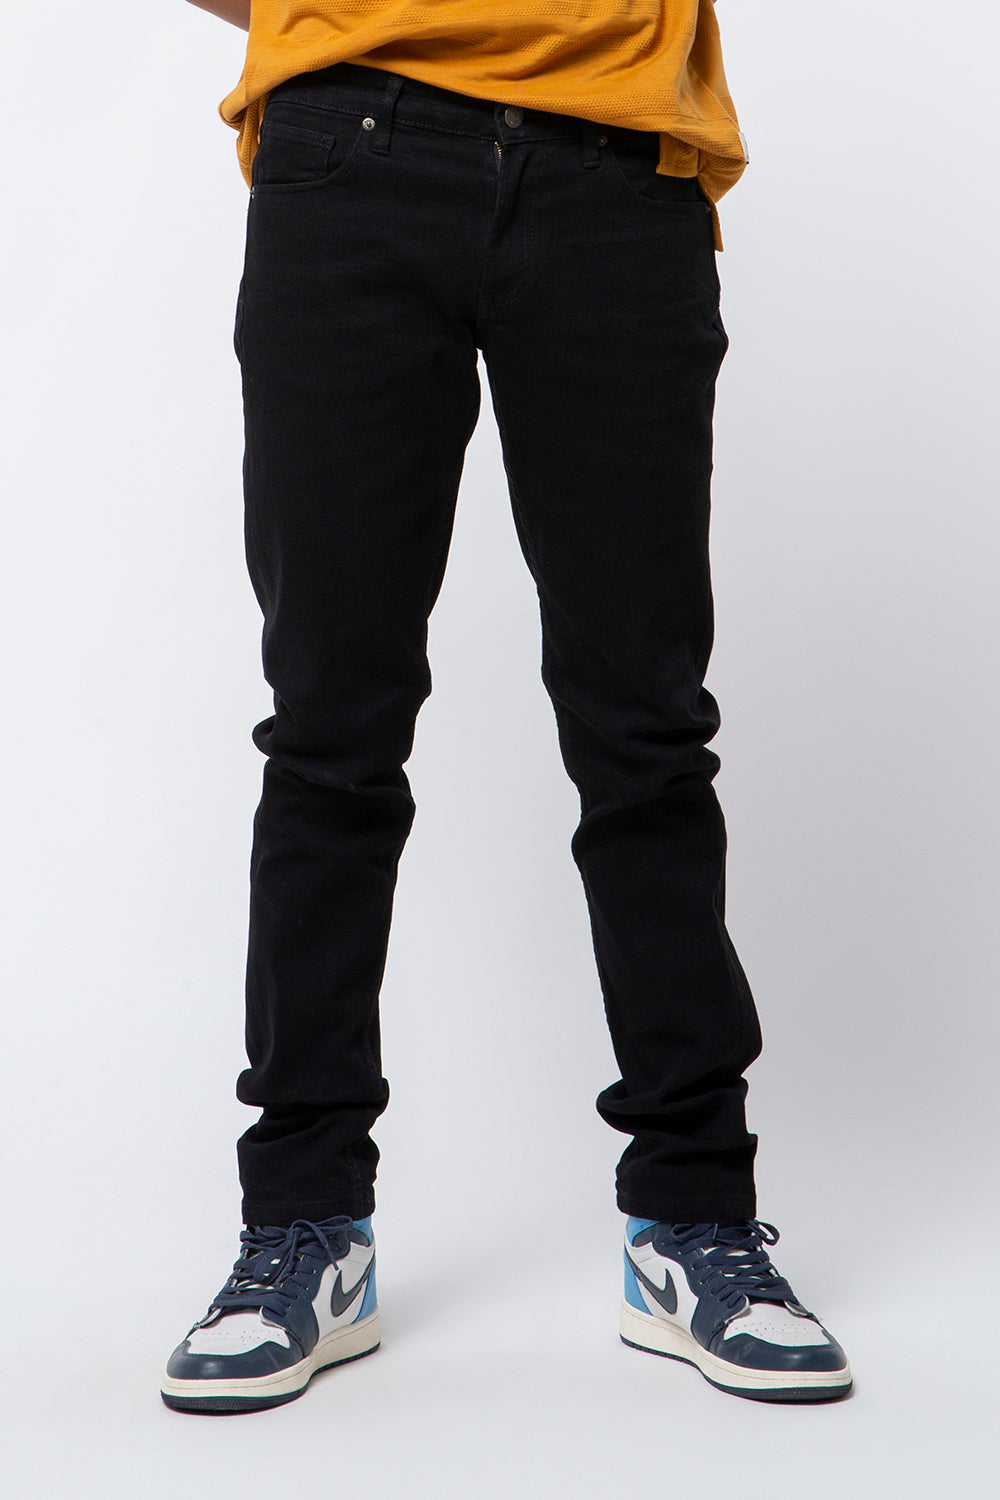 DENIM PANTS FIT 130 BLACK FW18